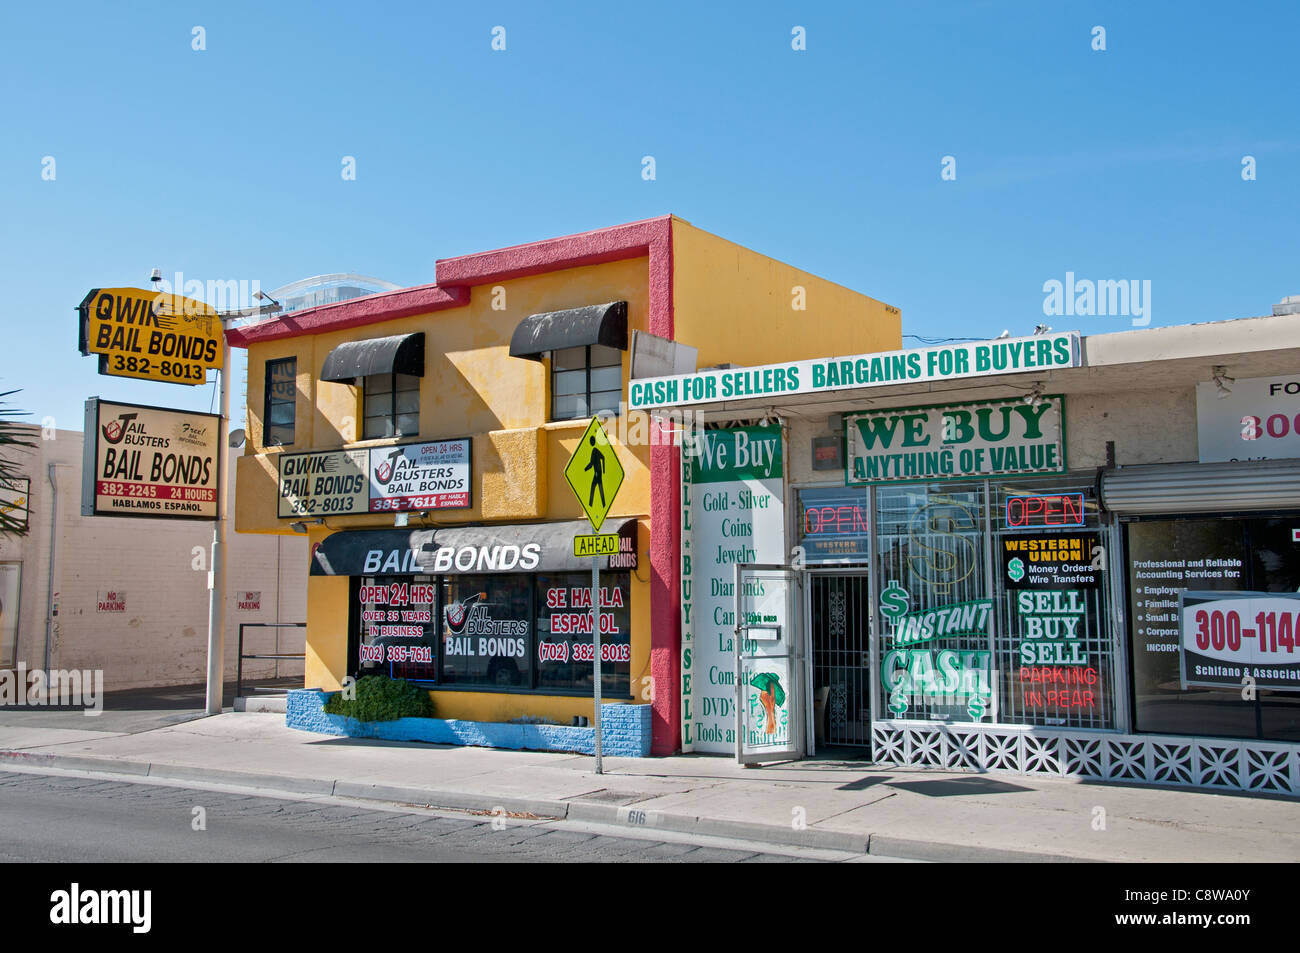 Bail bonds Pawn Shop Nevada Las Vegas  pawnbrokers - Stock Image